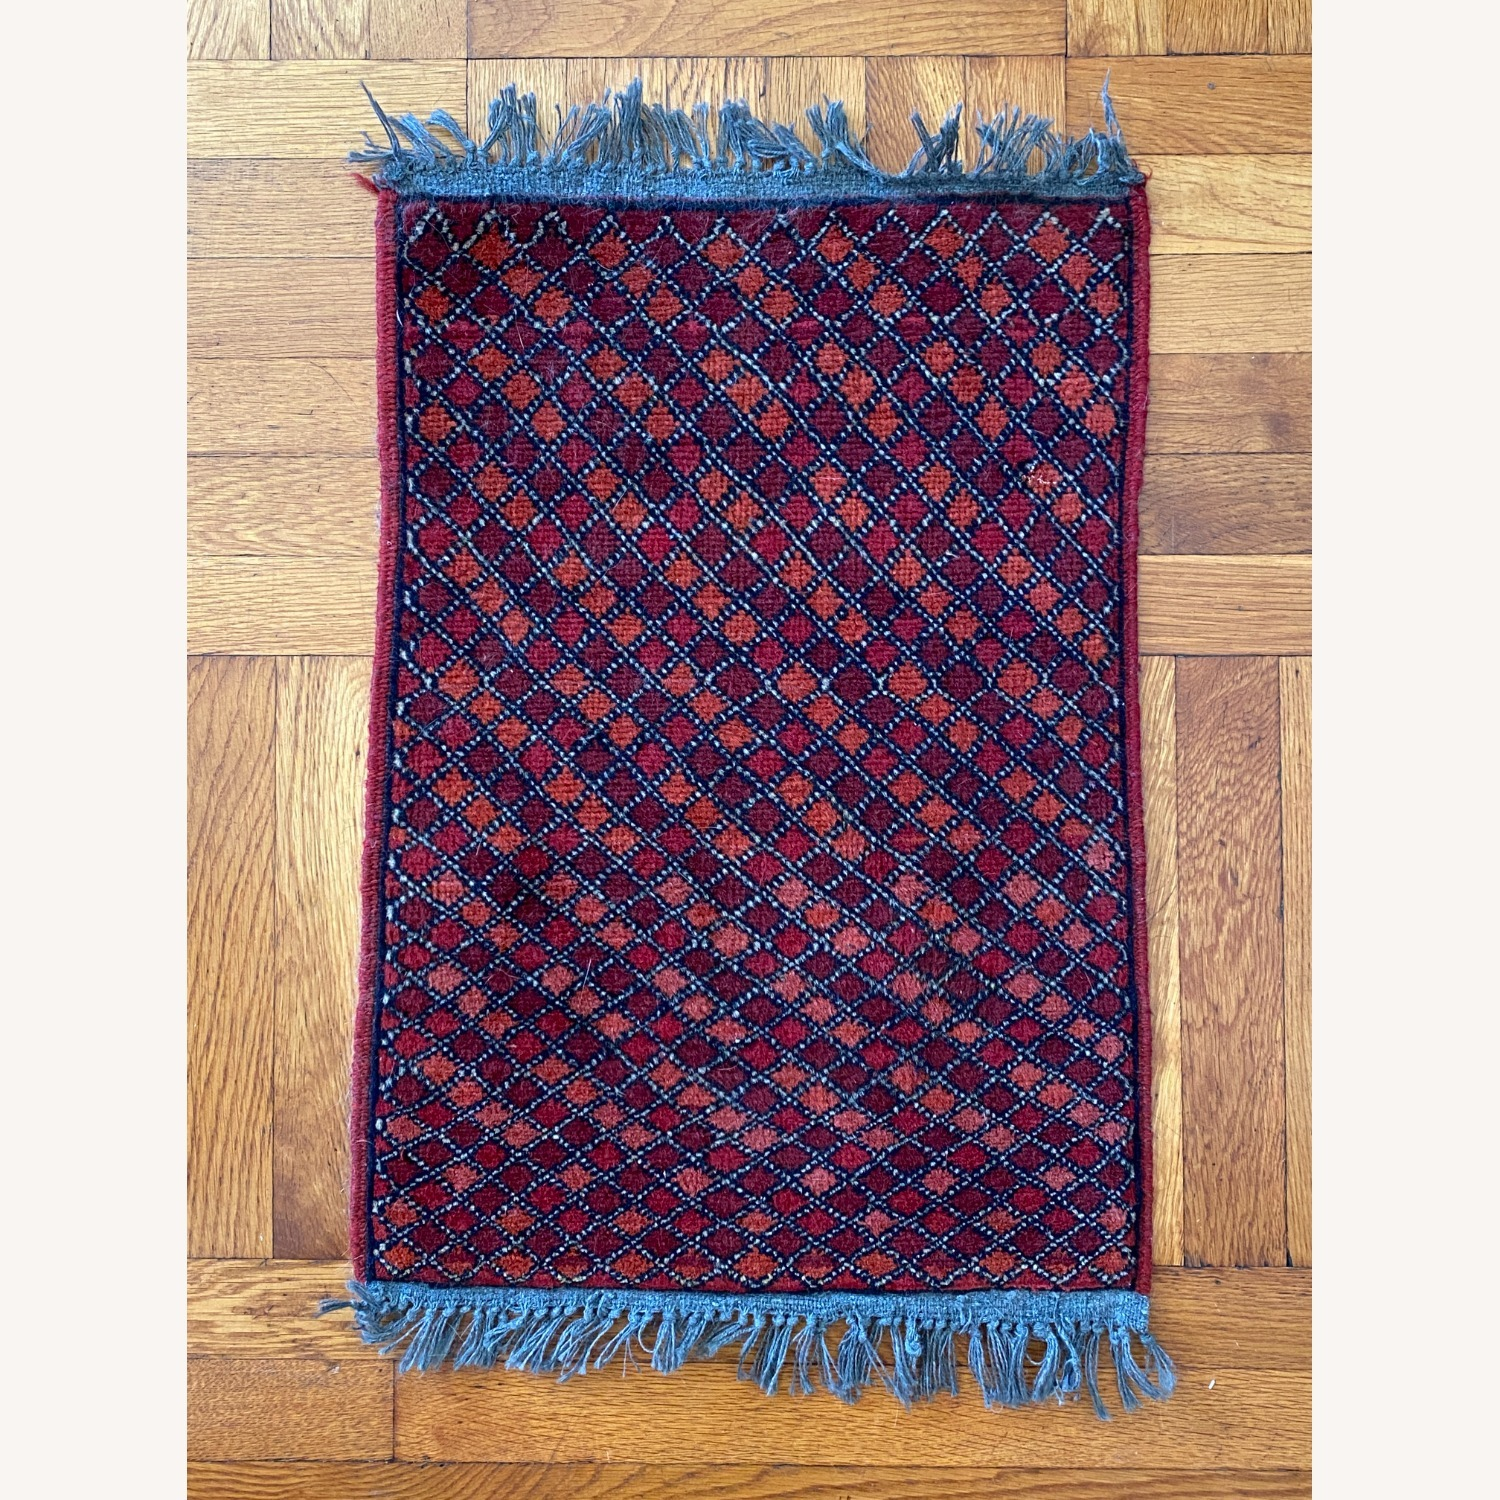 Small Geometric Patterned Afghani Rug - image-1